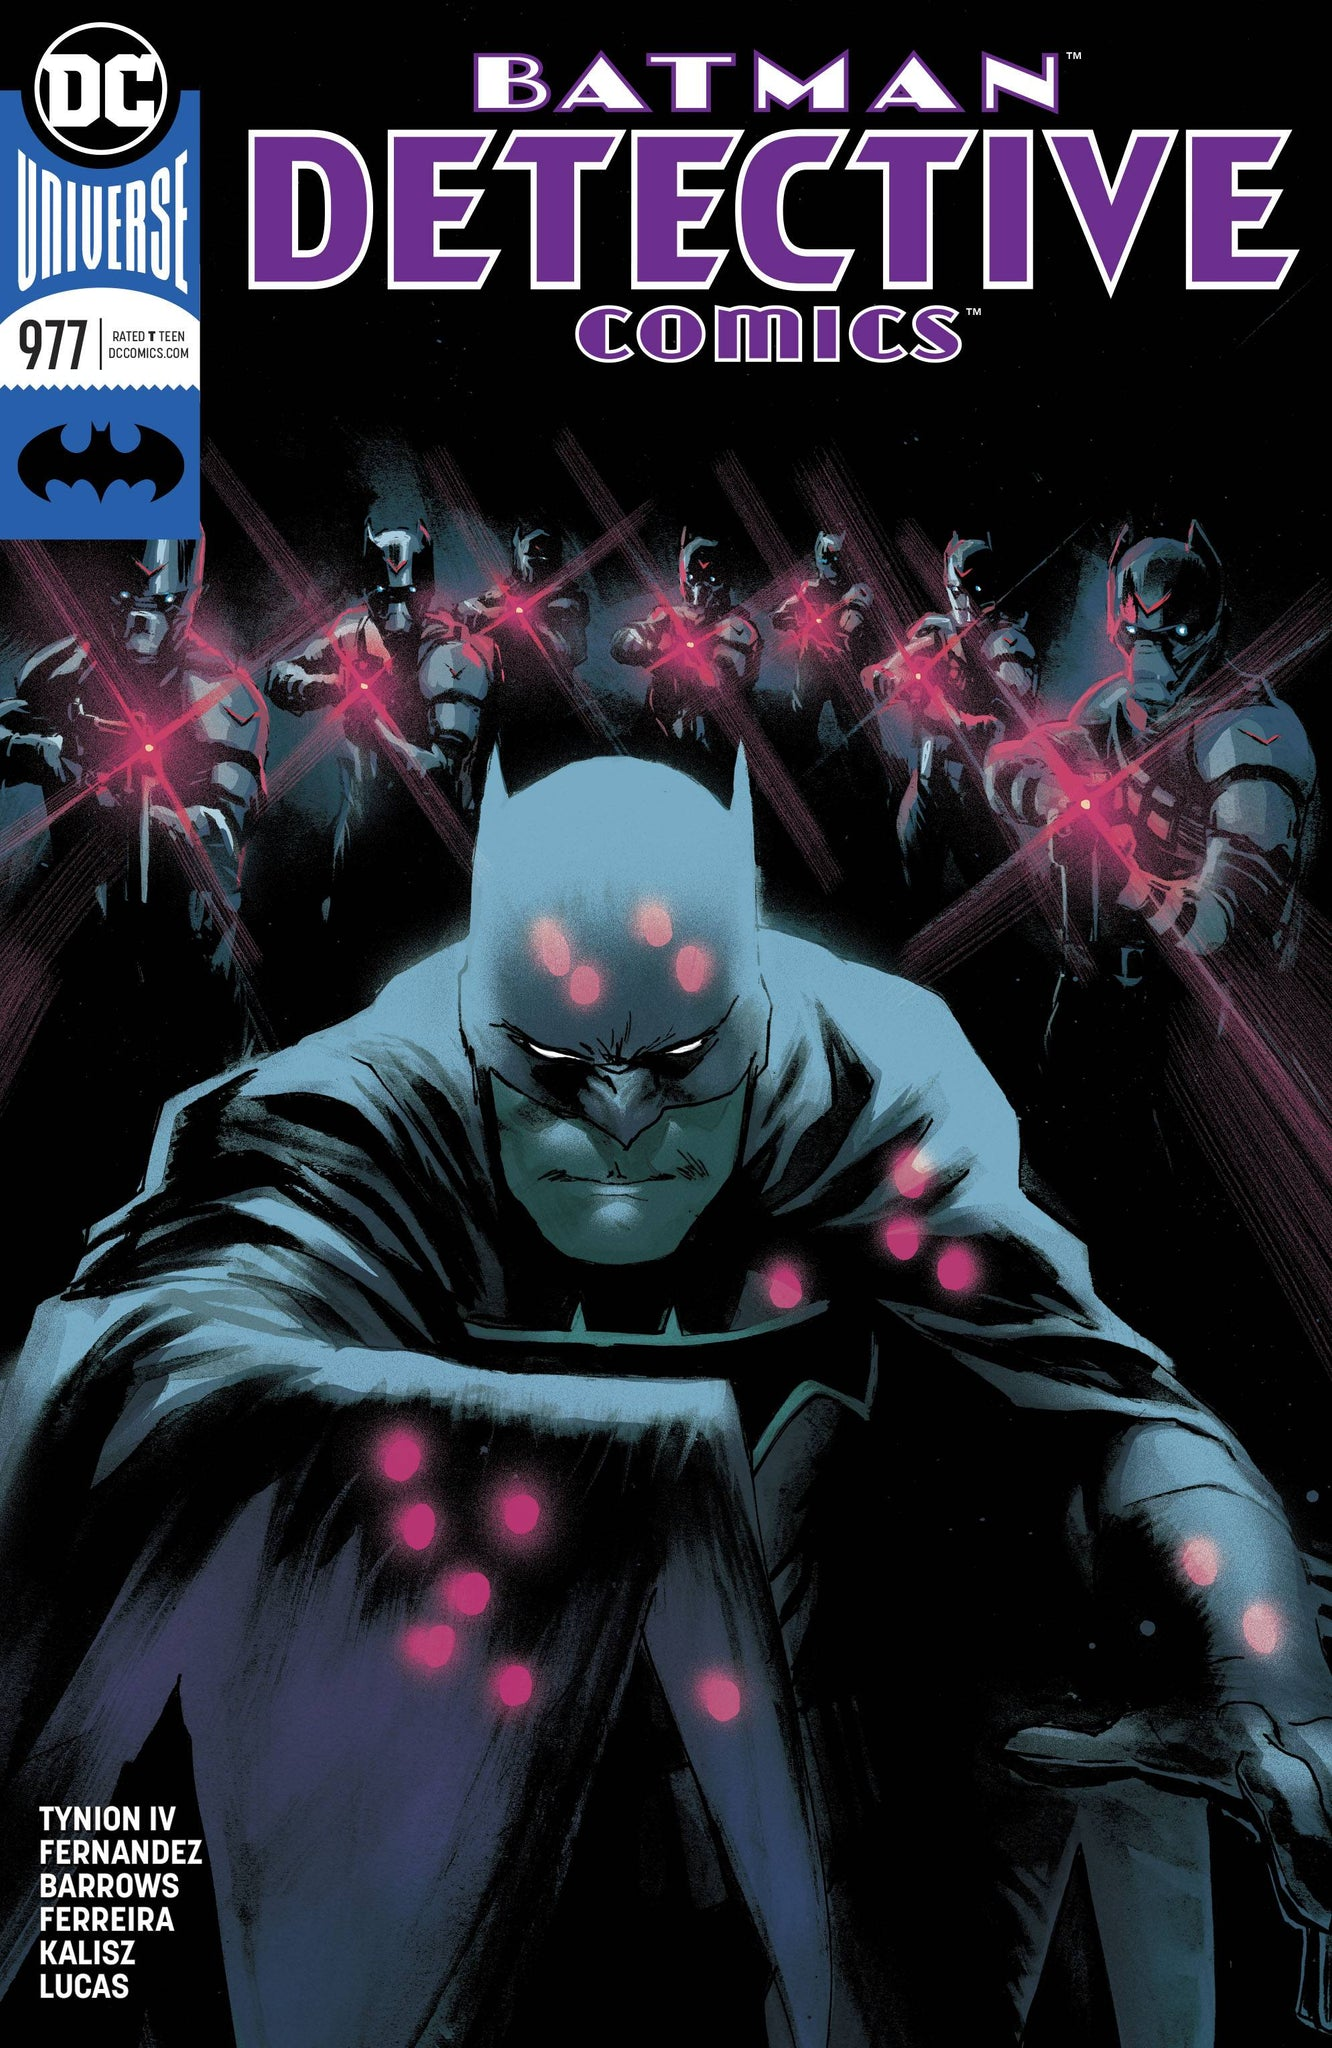 Batman Detective Comics #977